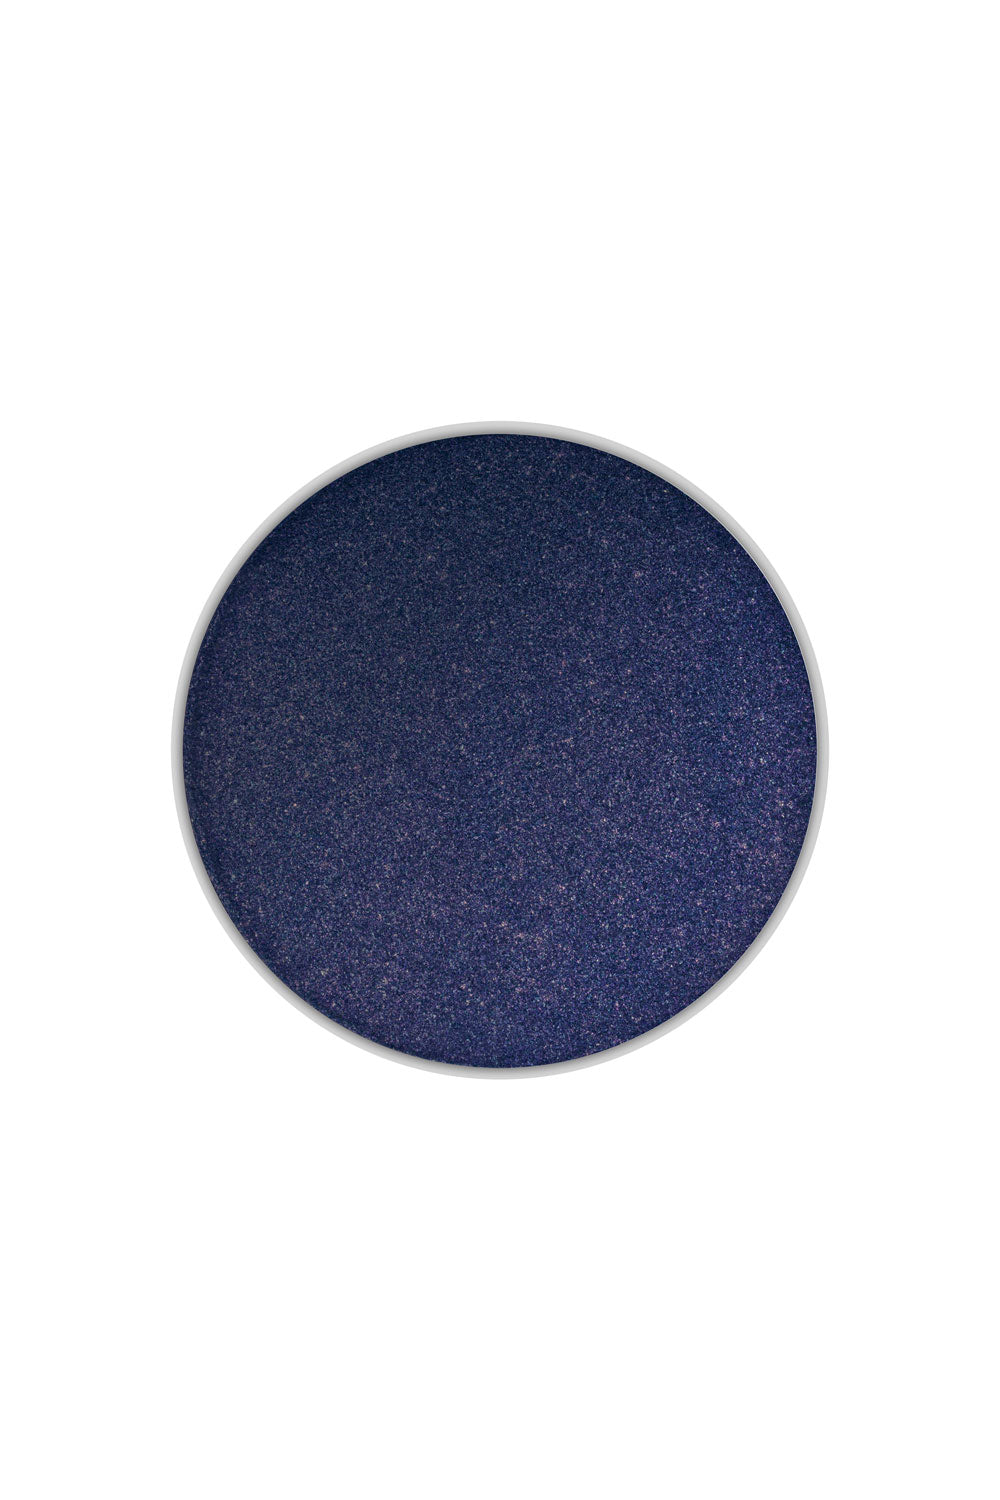 Twilight - Eyeshadow Pan